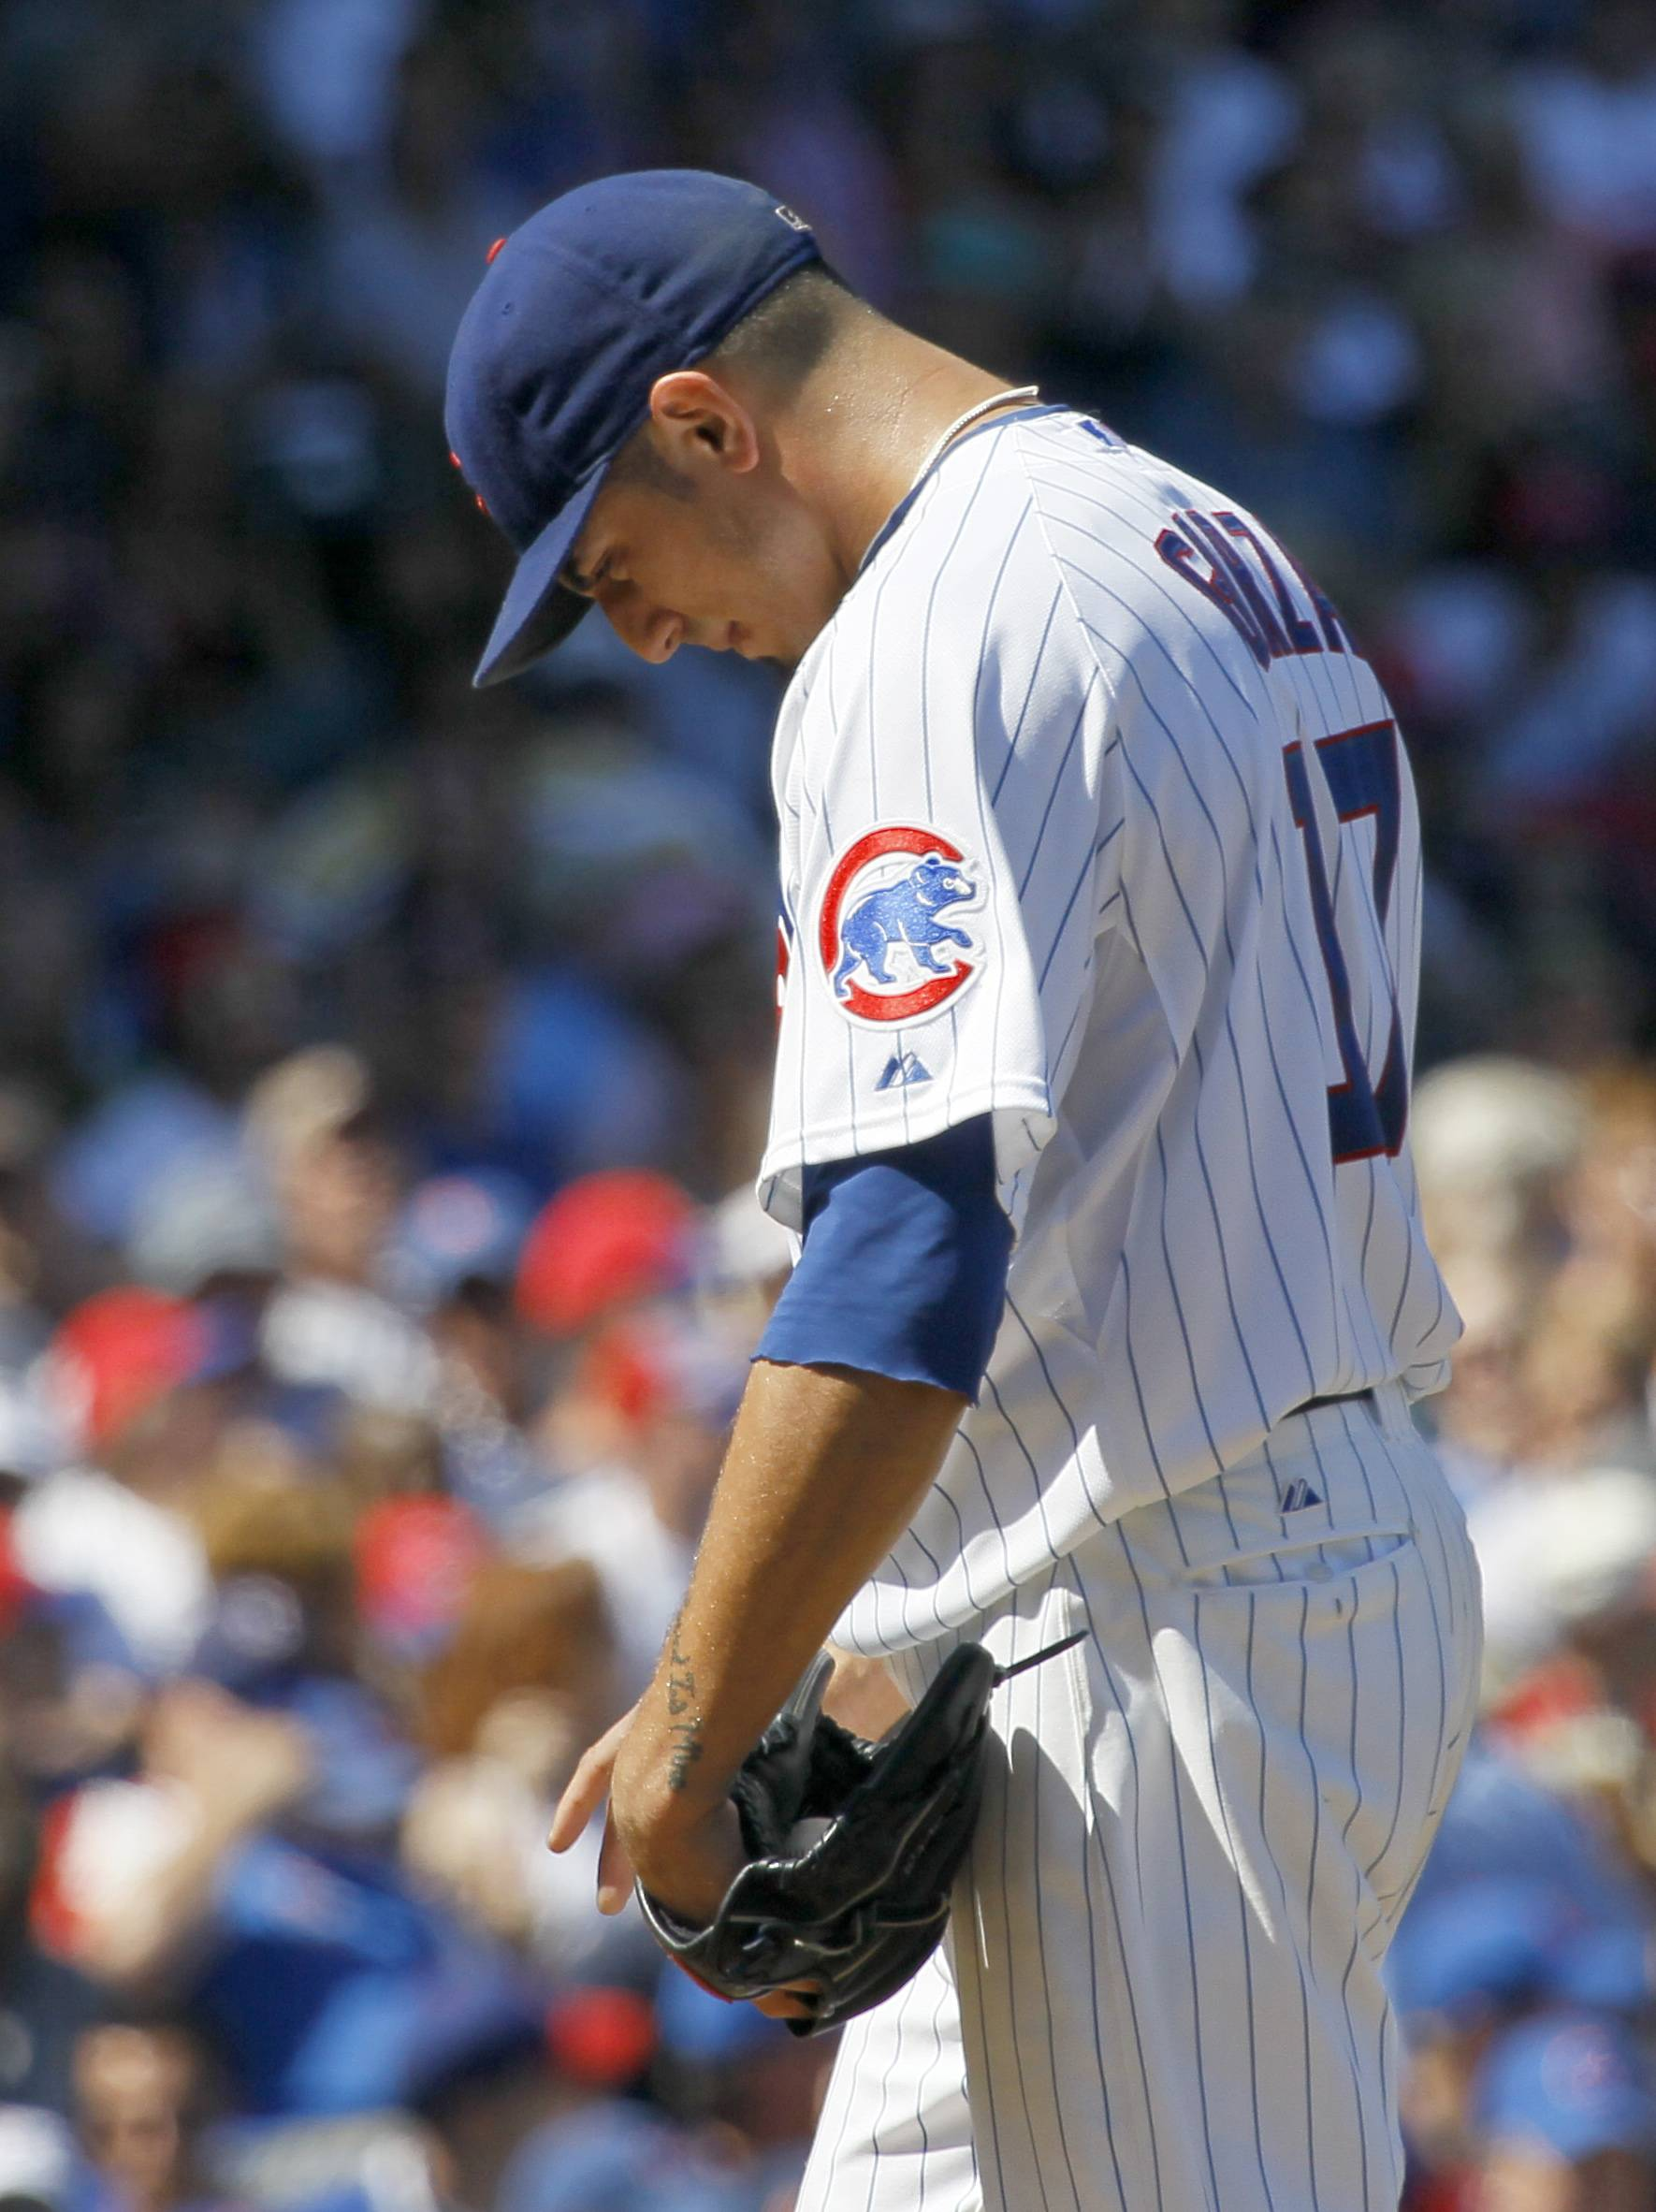 Cubs commit 4 errors in 8-3 loss